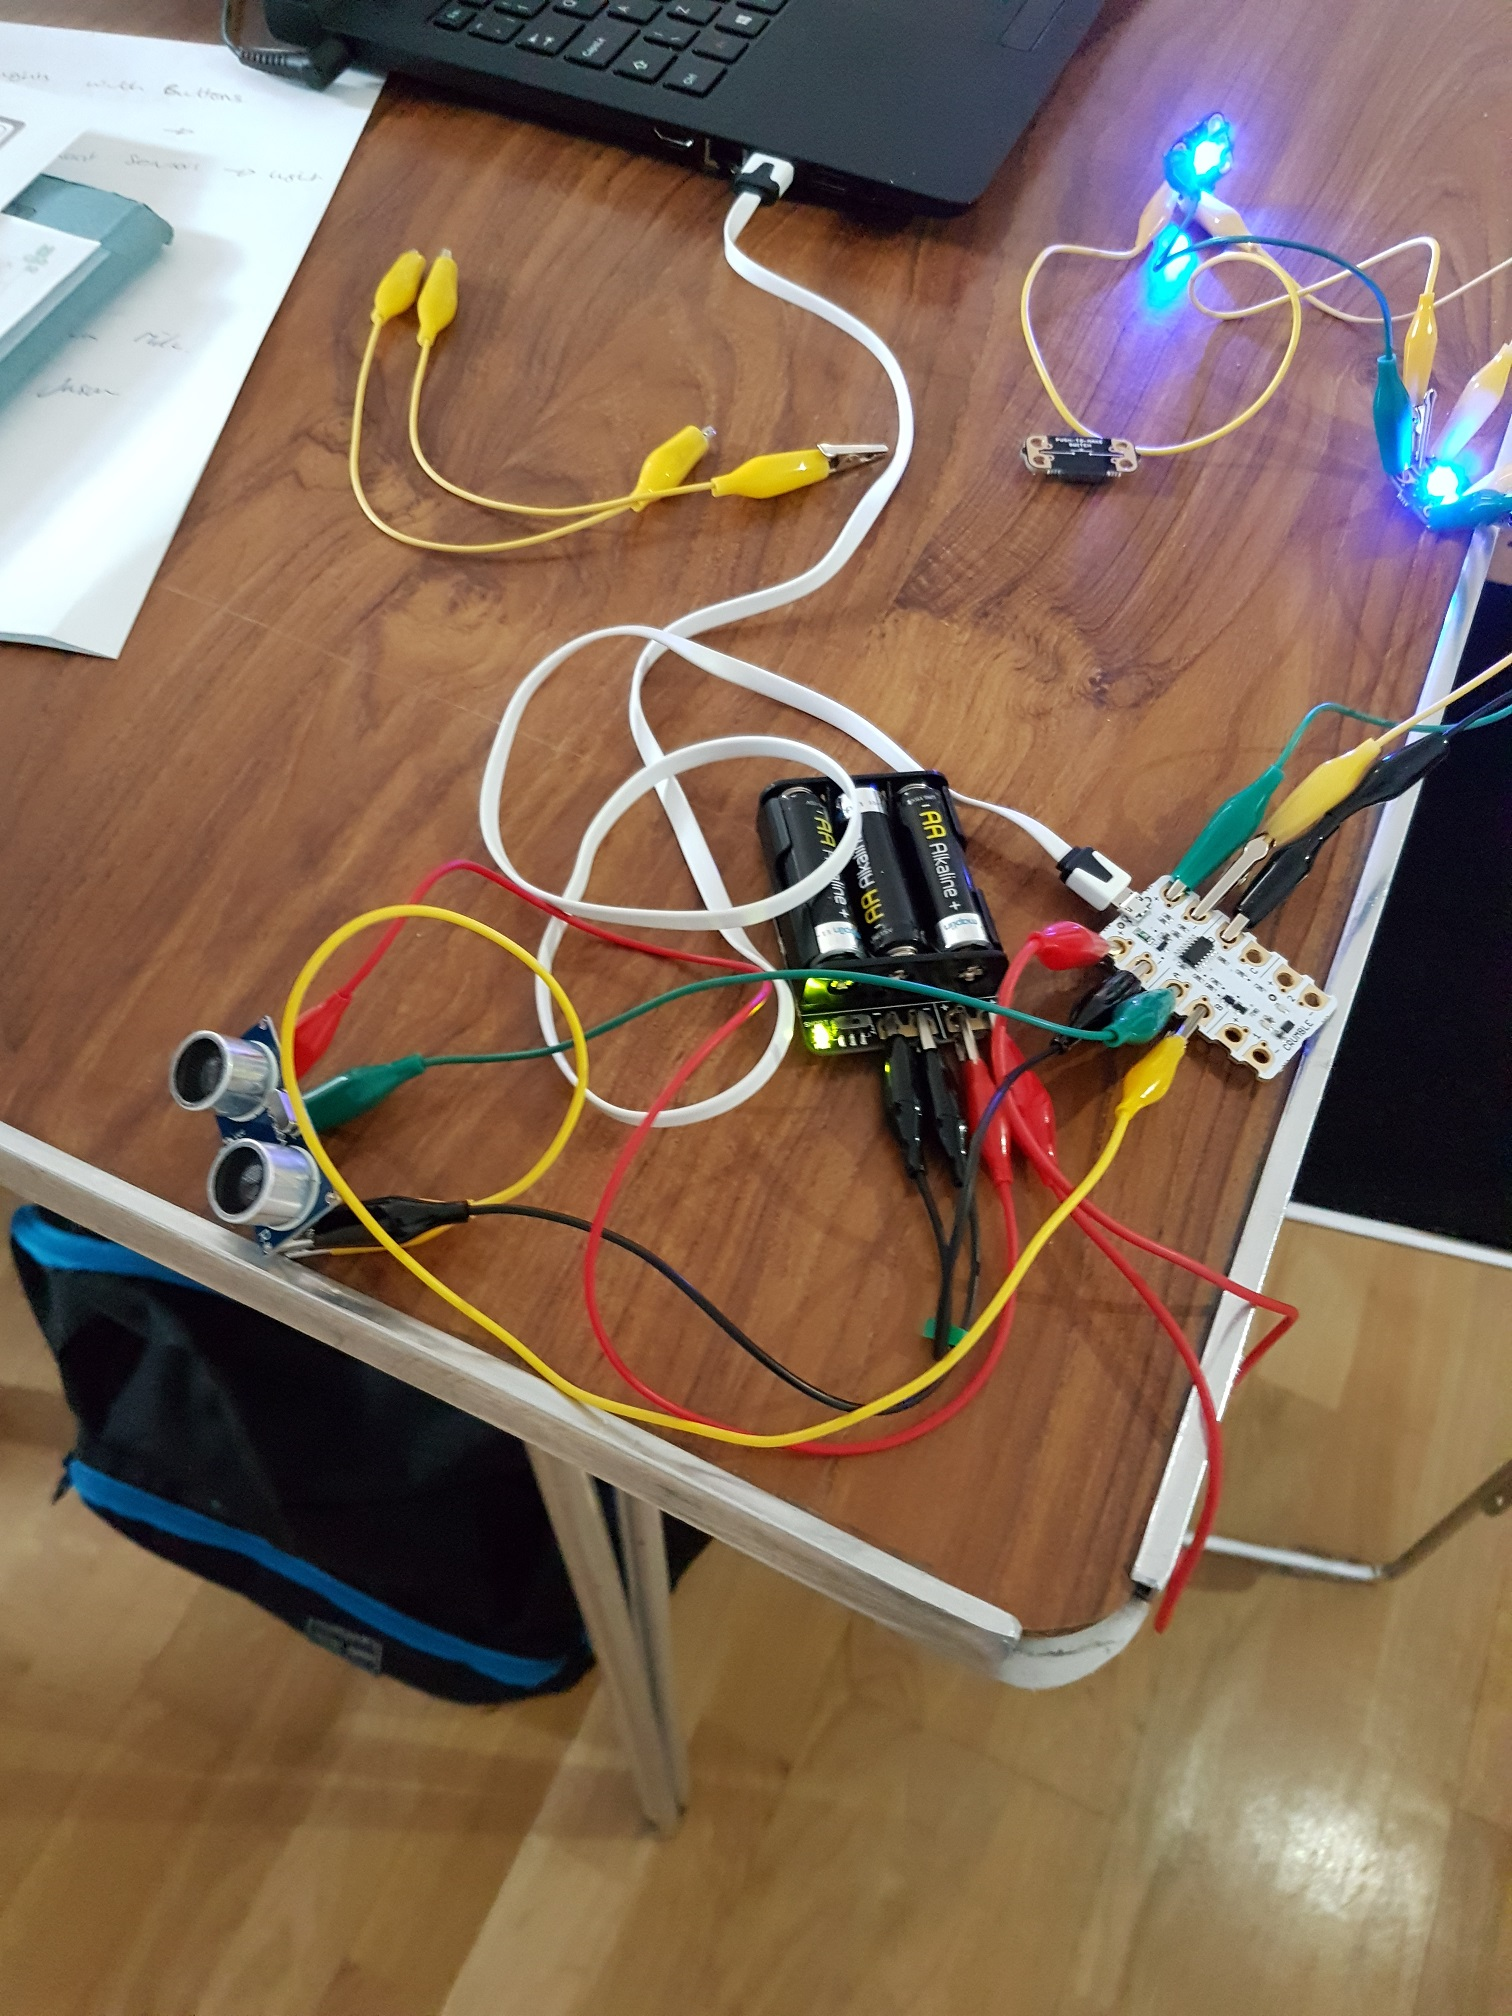 Digital Futures 17 - Crumble Controller with distance sensor and lights